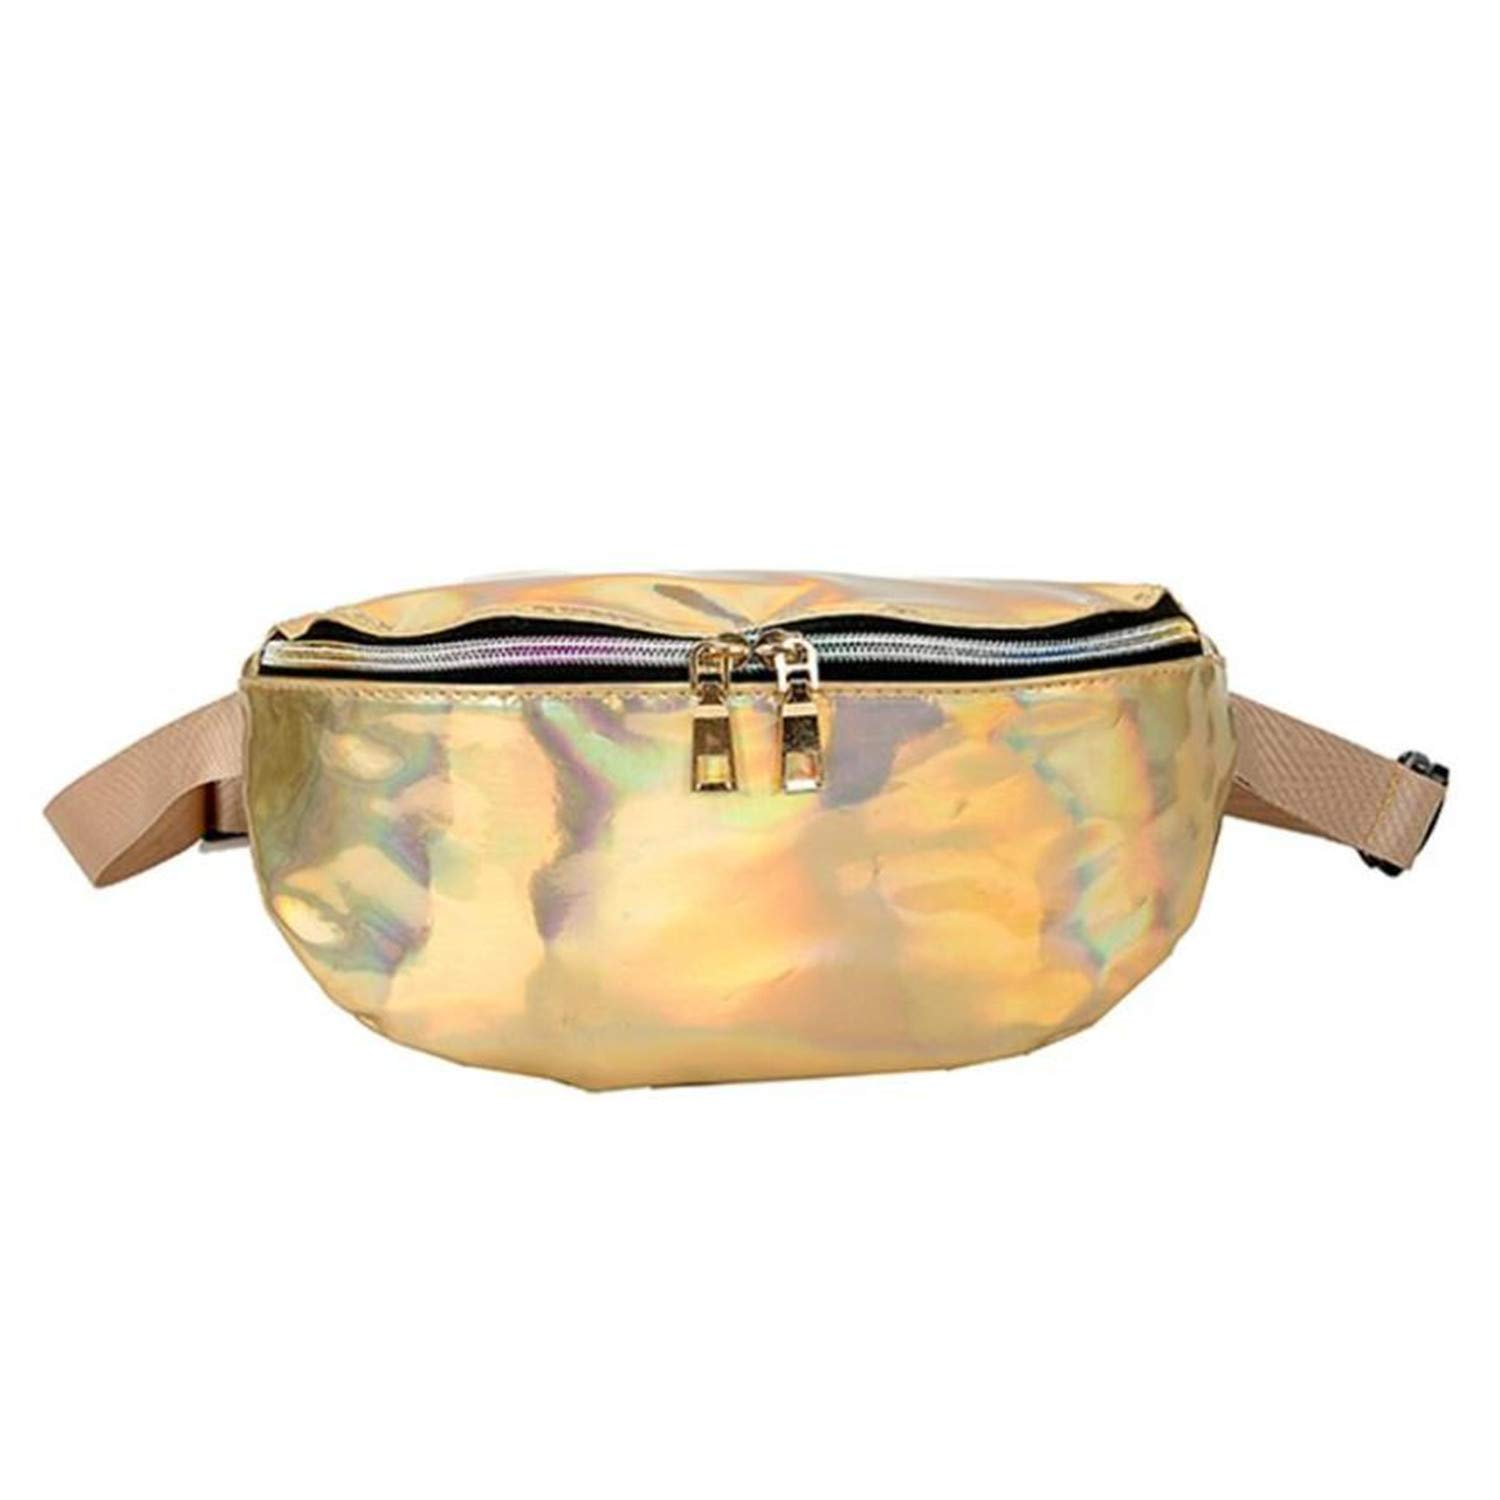 Amazon.com: Waist Bag Chest Bag Women Shouler Bag Fanny Pack ...